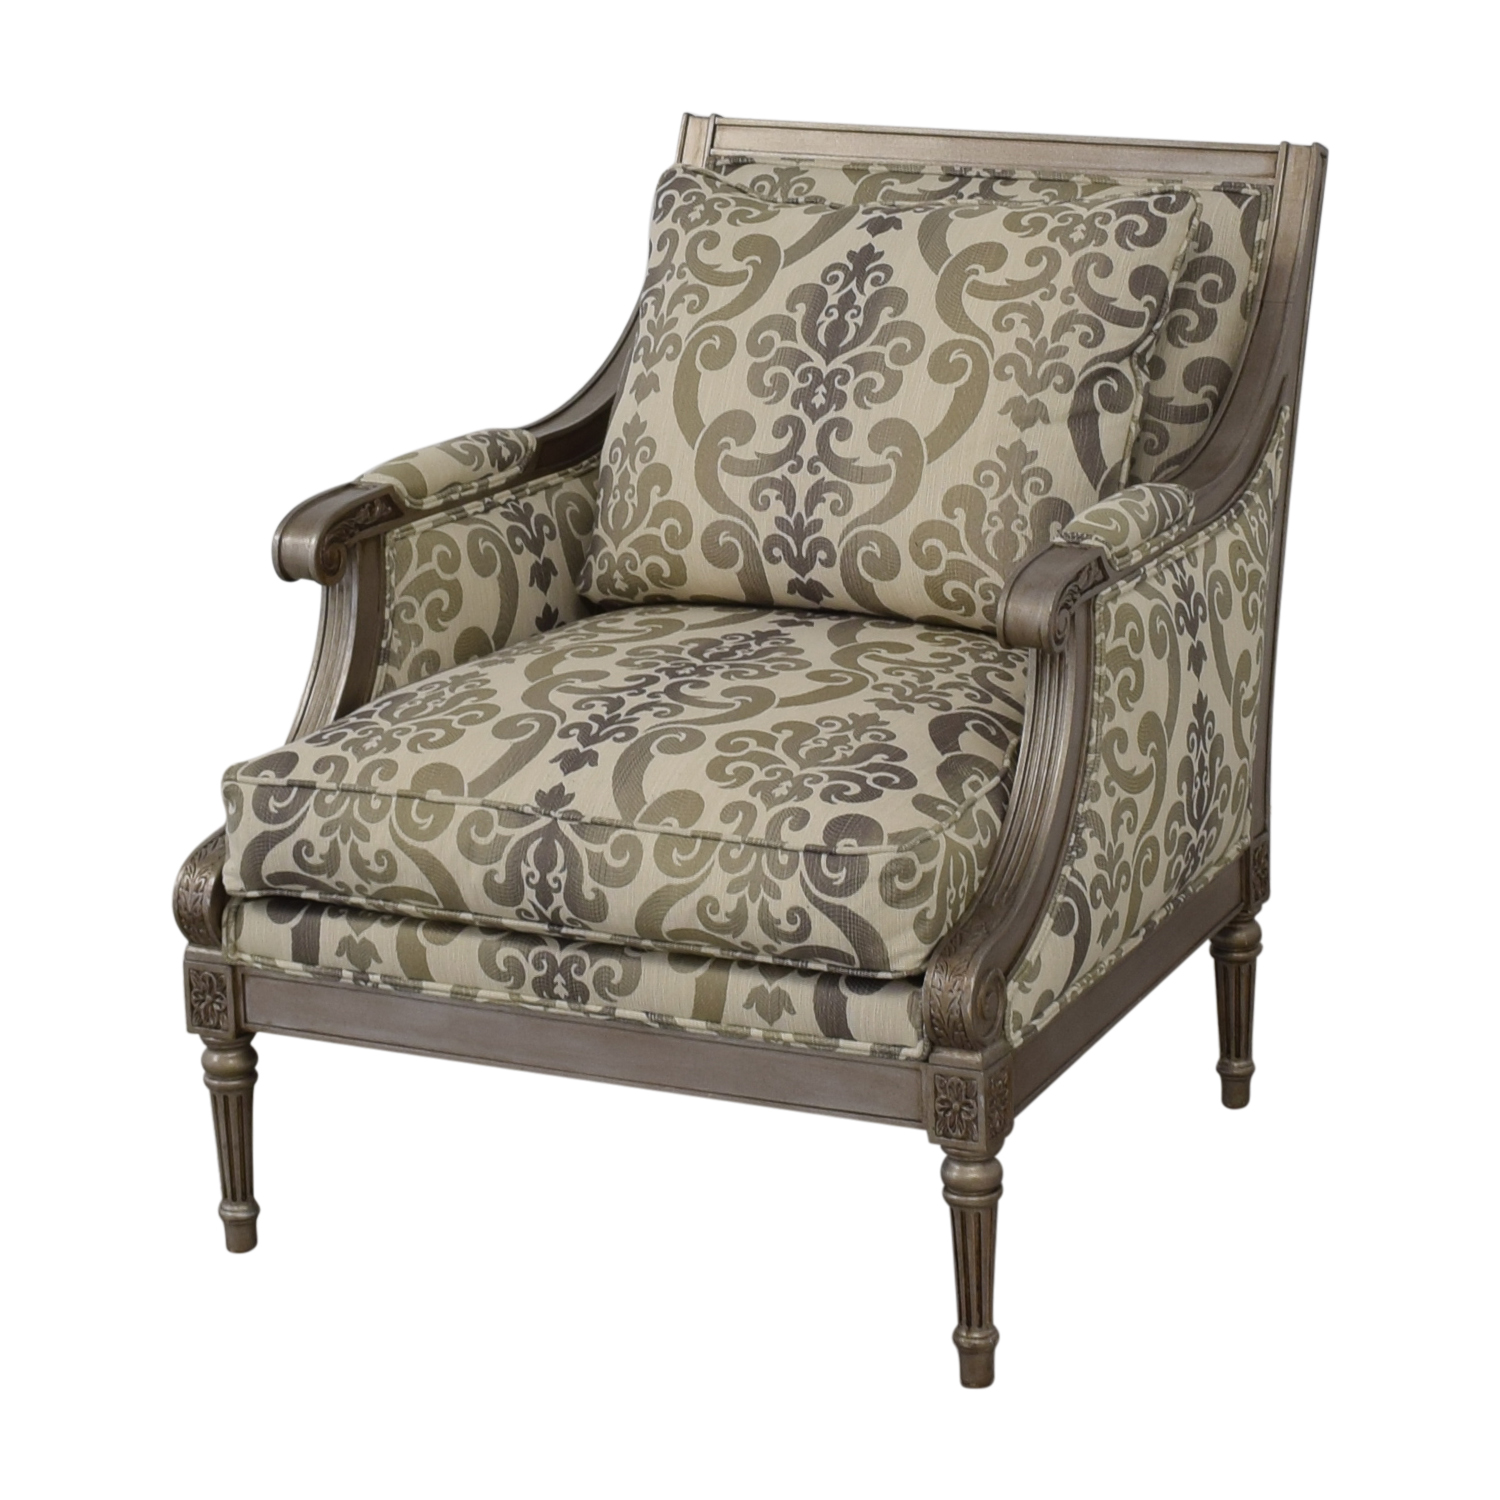 Ethan Allen Ethan Allen Fairfax Chair discount